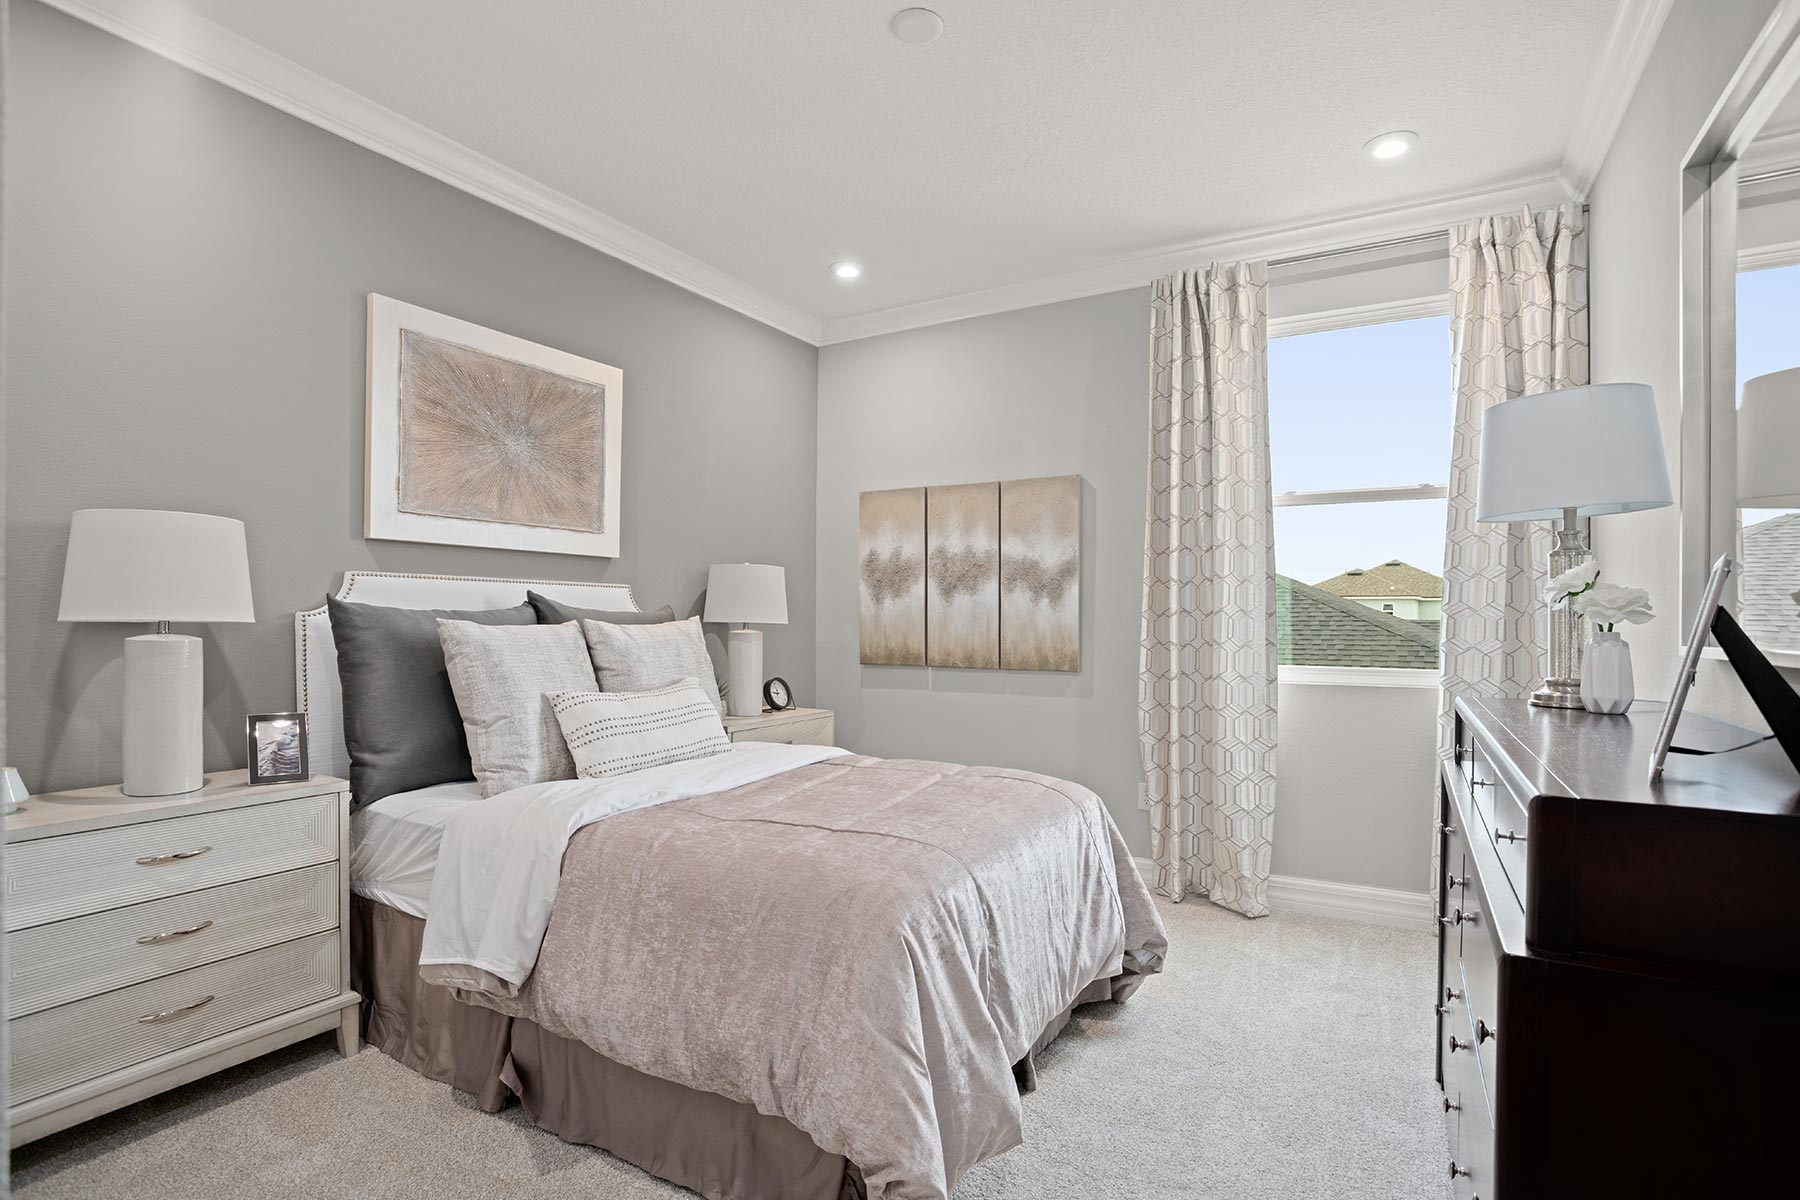 Winthrop Plan Bedroom at Tapestry in Kissimmee Florida by Mattamy Homes